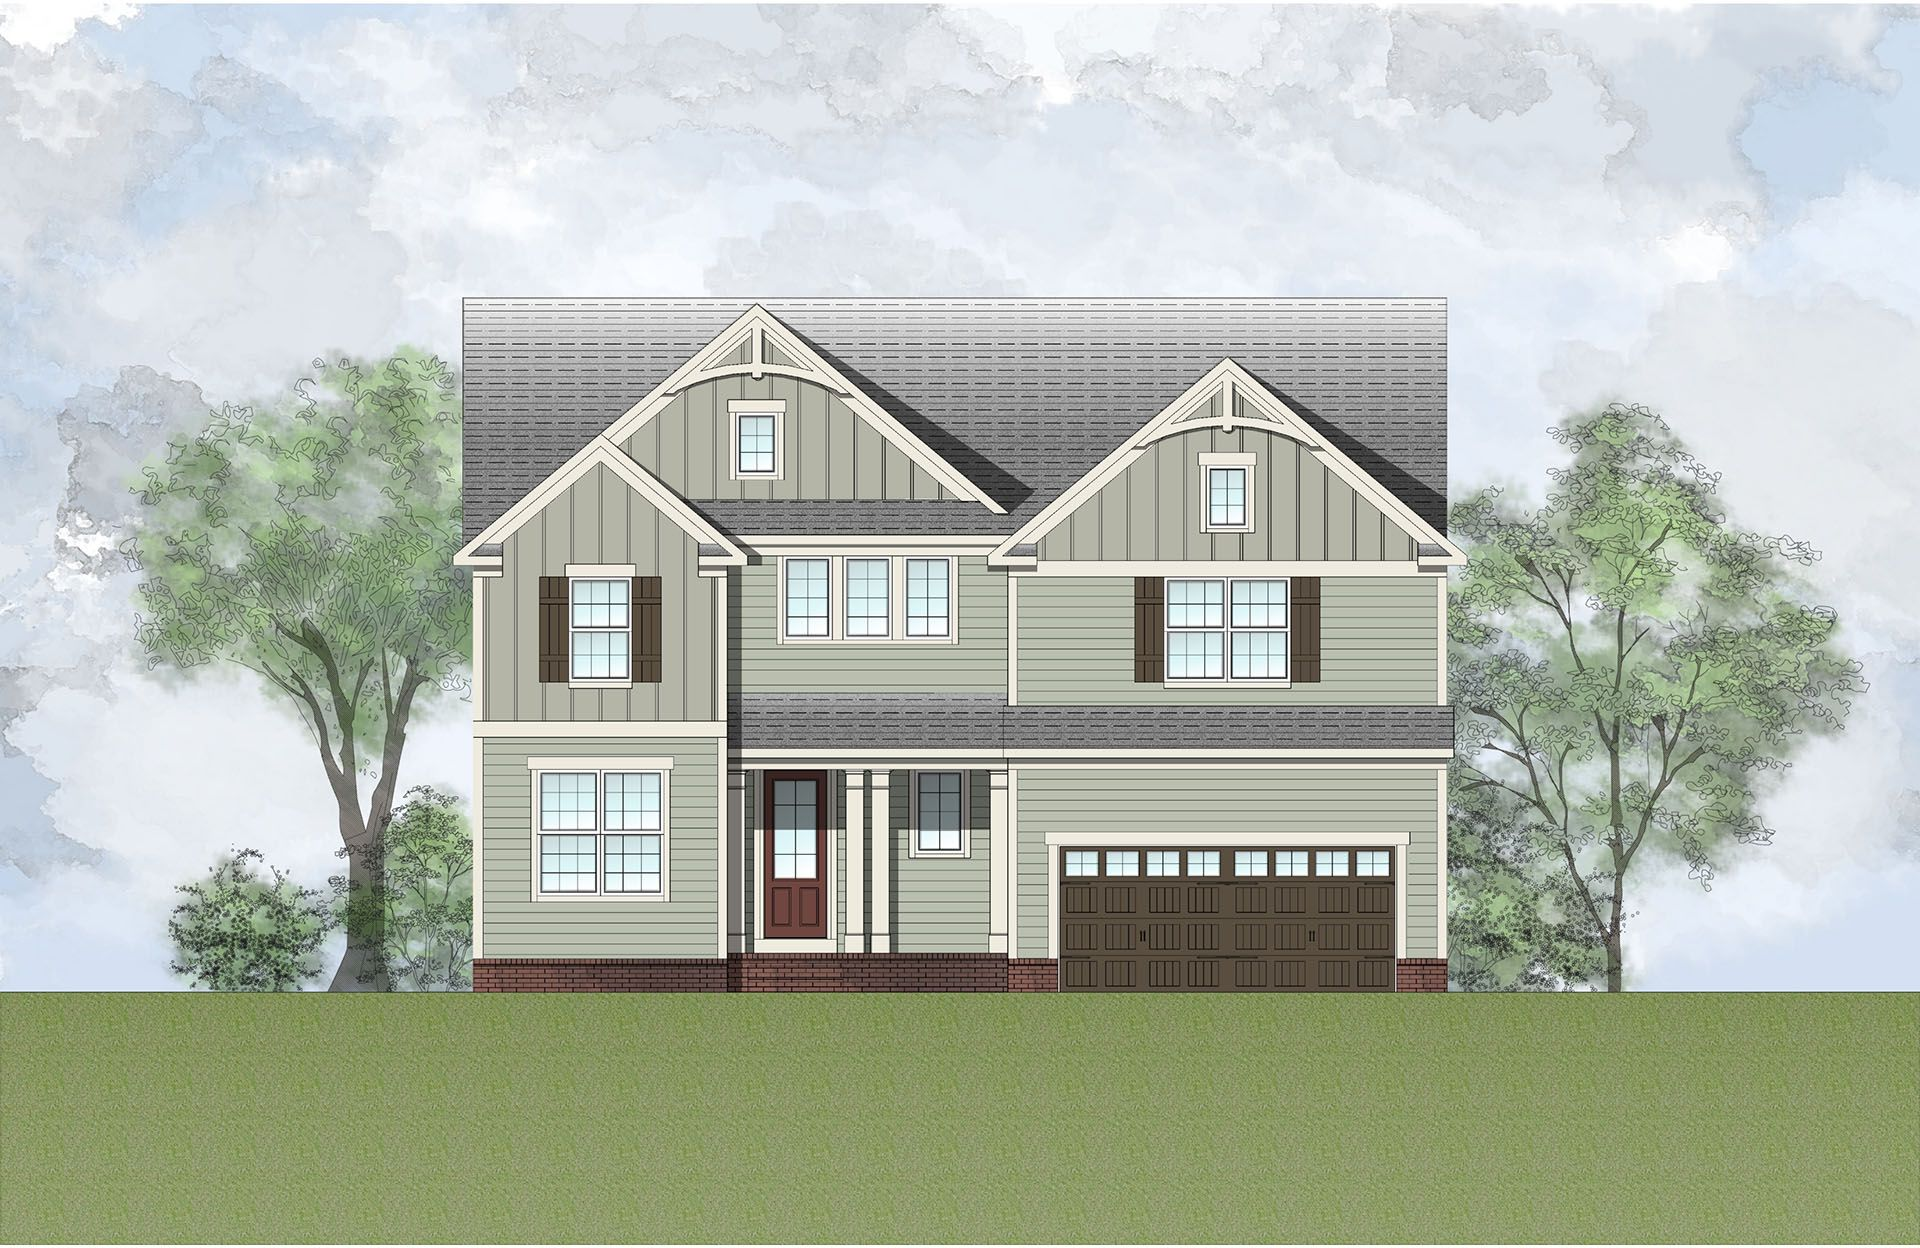 Single Family for Active at Willoughby - Hollister Ii 496 Adkins Ridge Road Rolesville, North Carolina 27571 United States